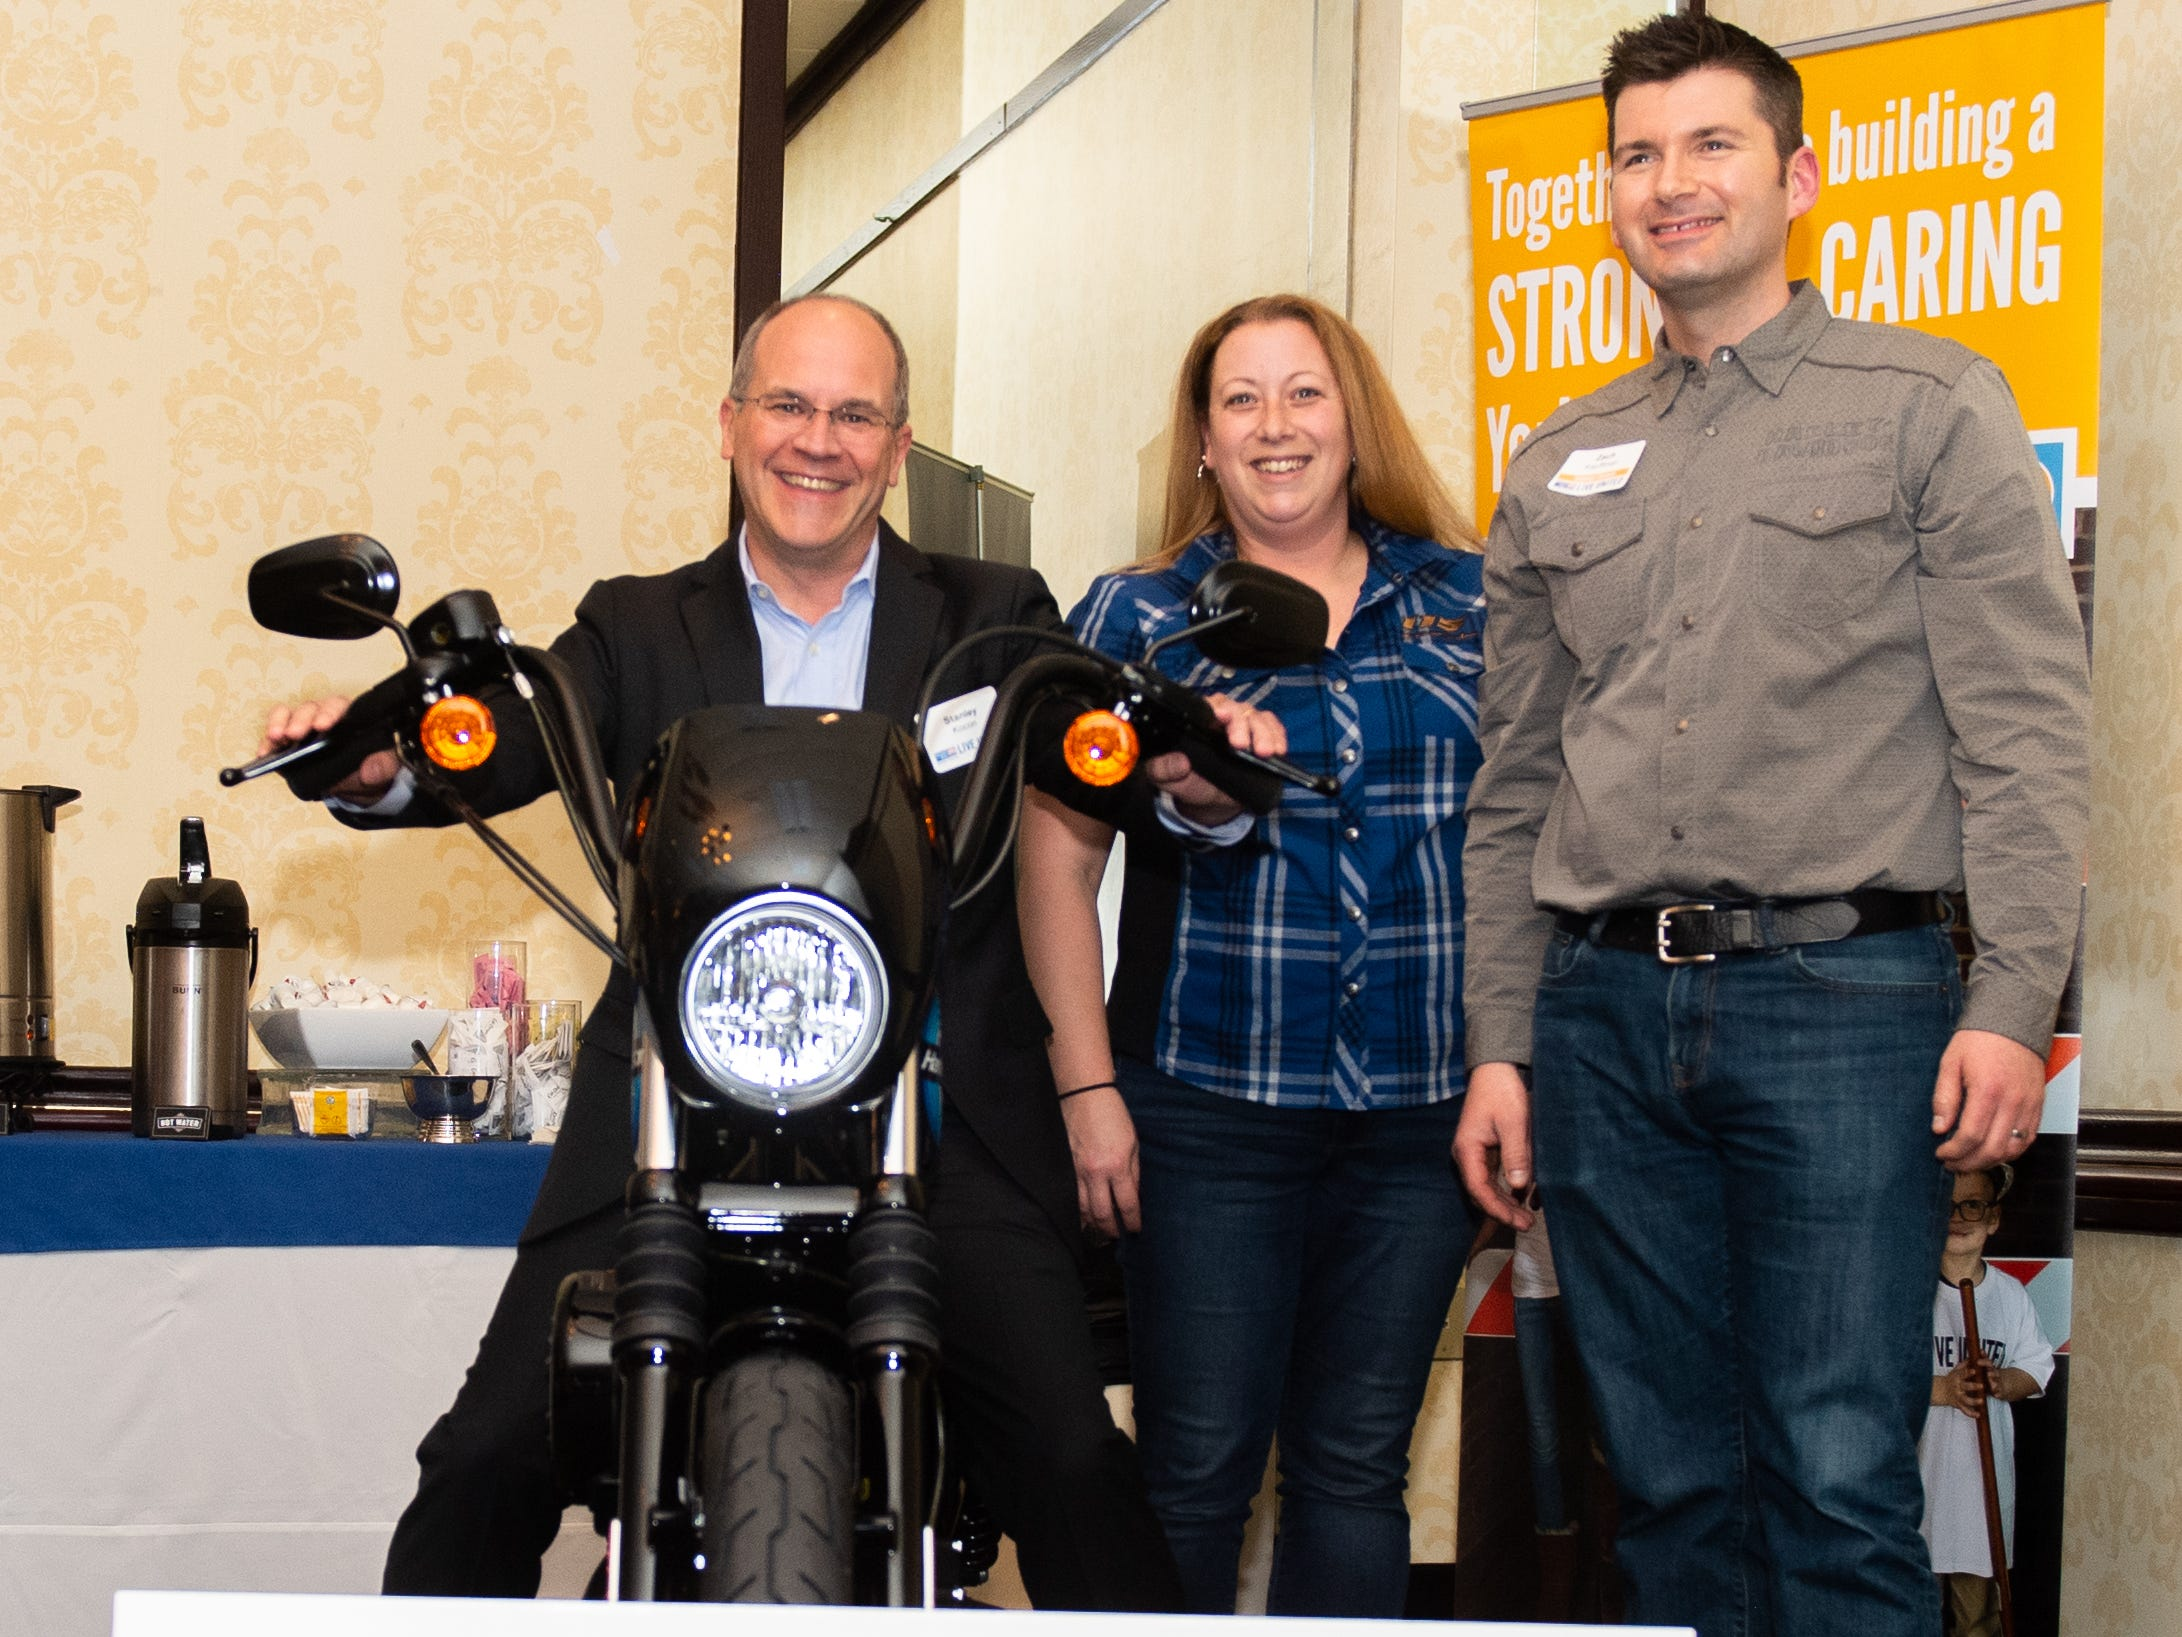 The grand prize of the night went to Stanley Kocon of Voith Hydro. He won a 2019 Harley-Davidson Iron 1200 Motorcycle during the 2018 United Way Campaign Celebration, February 7, 2019.